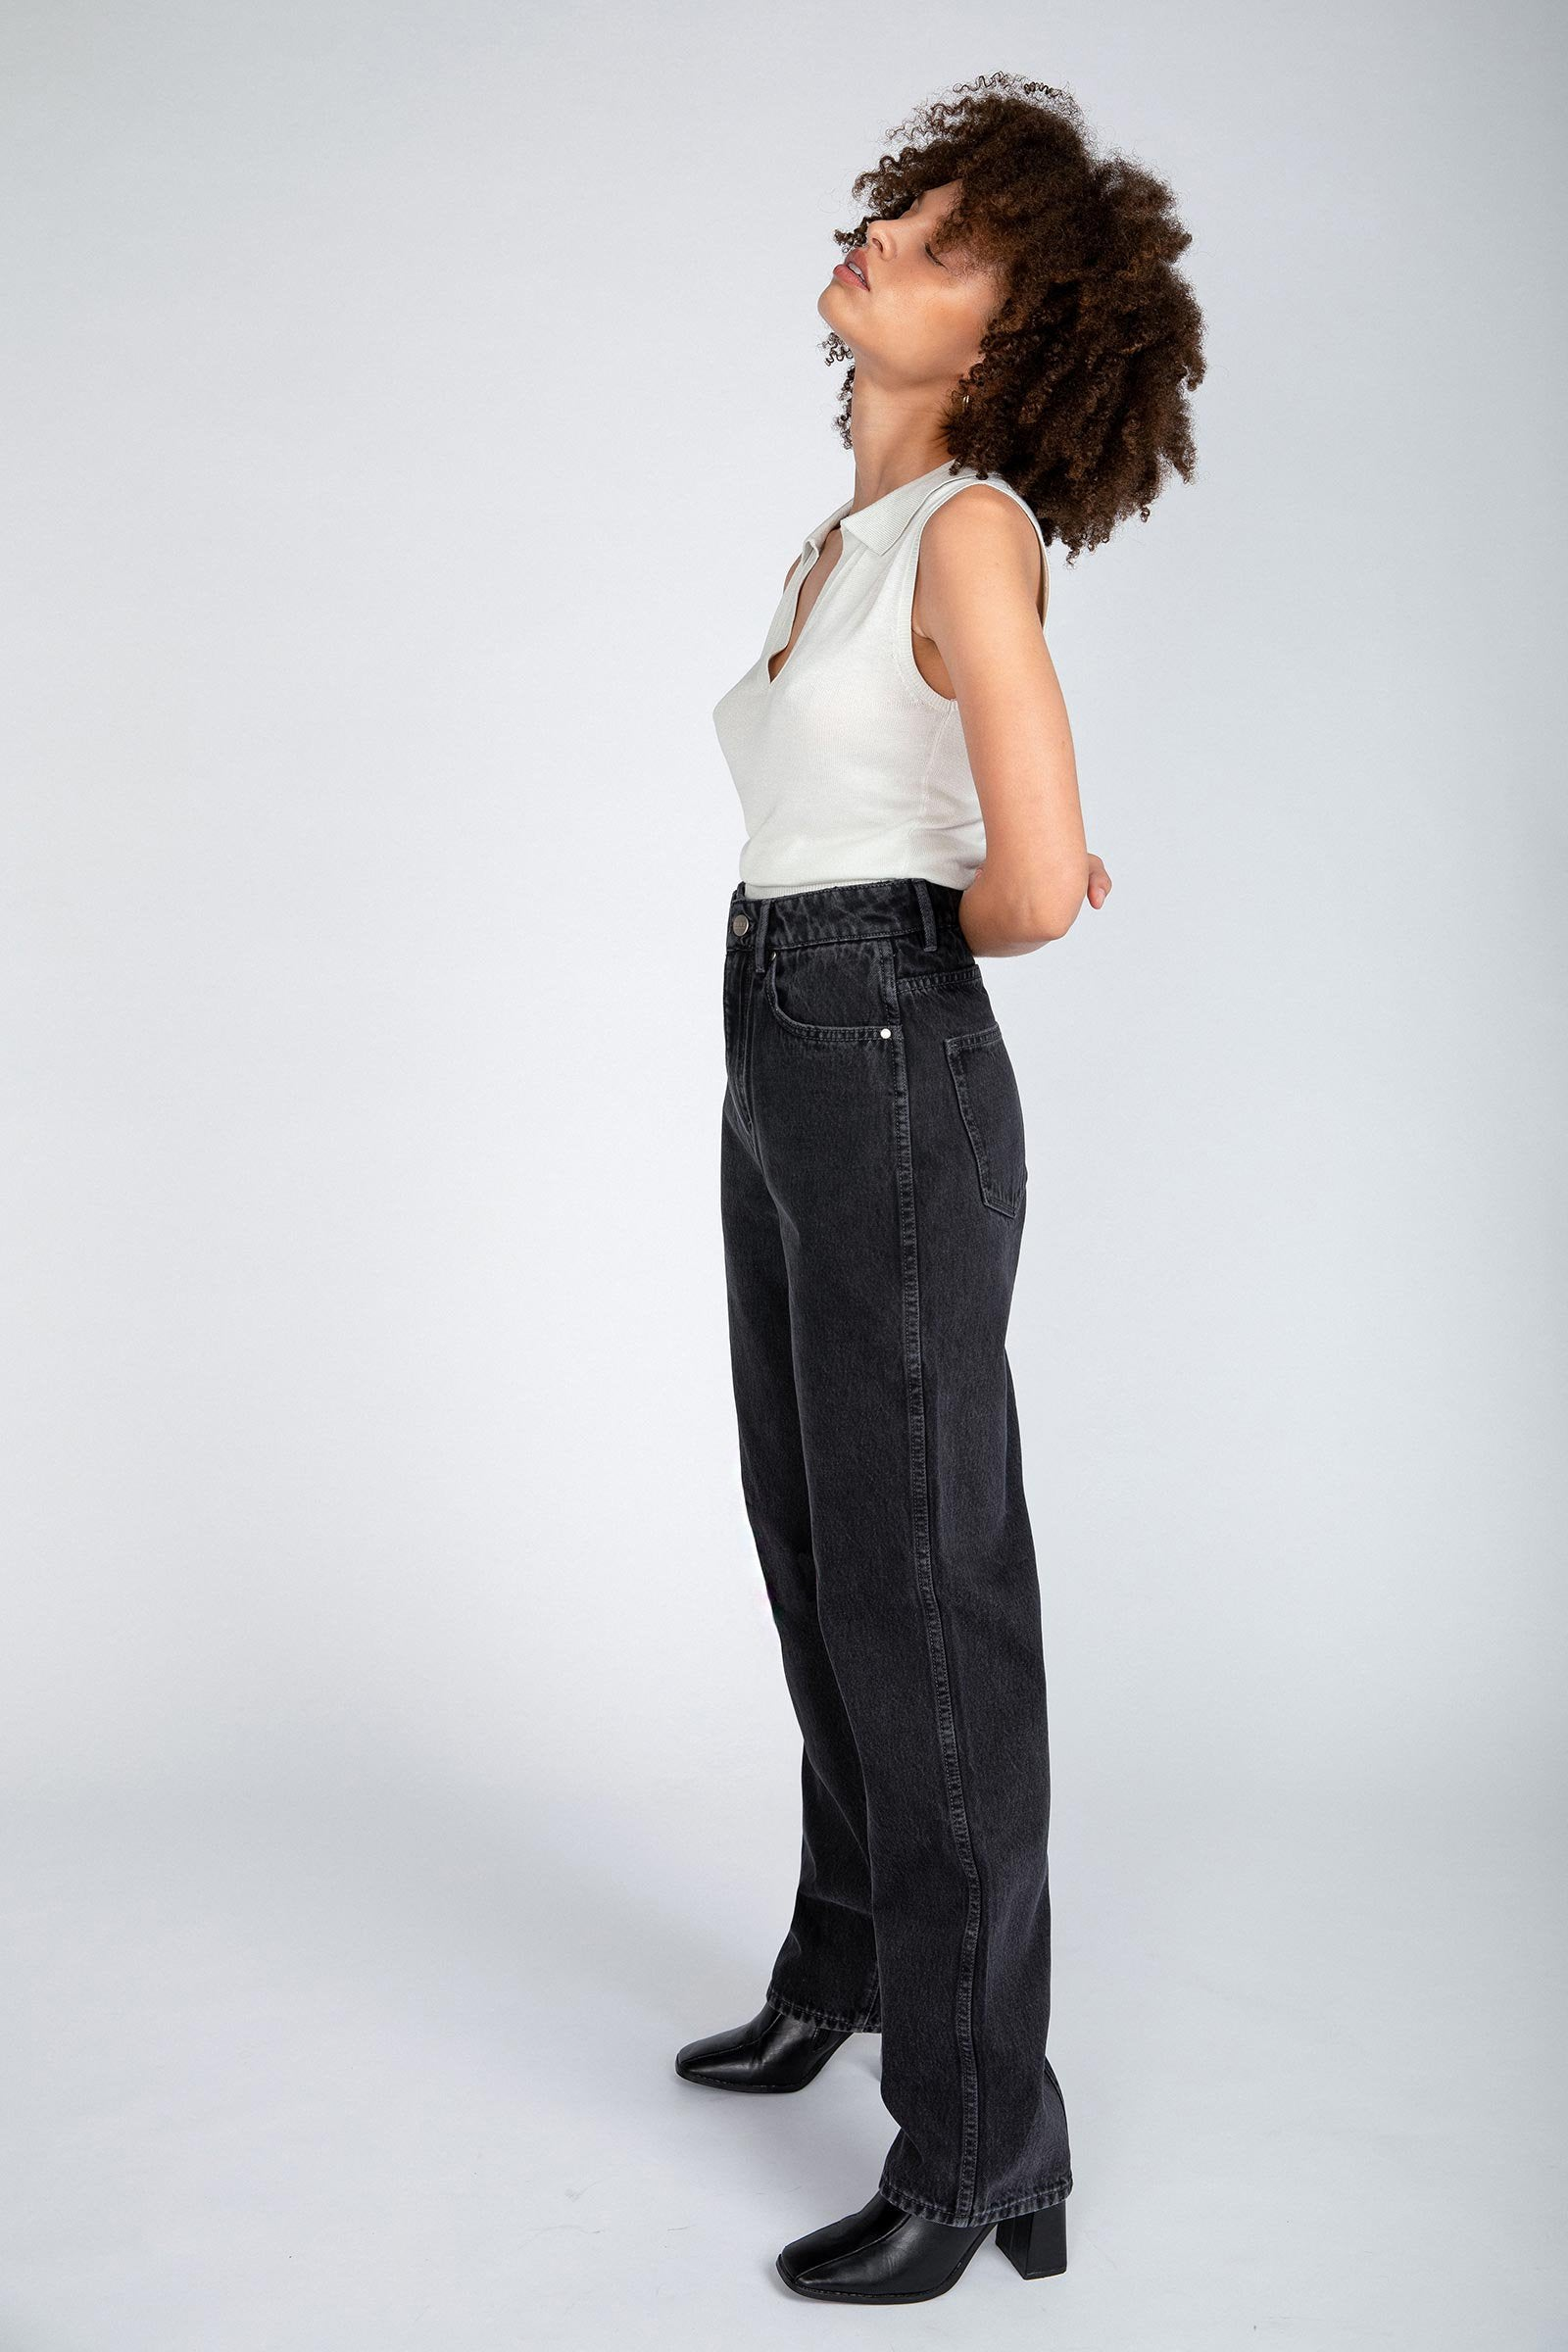 NEUW Sade Baggy Jeans in Zero Washed Black